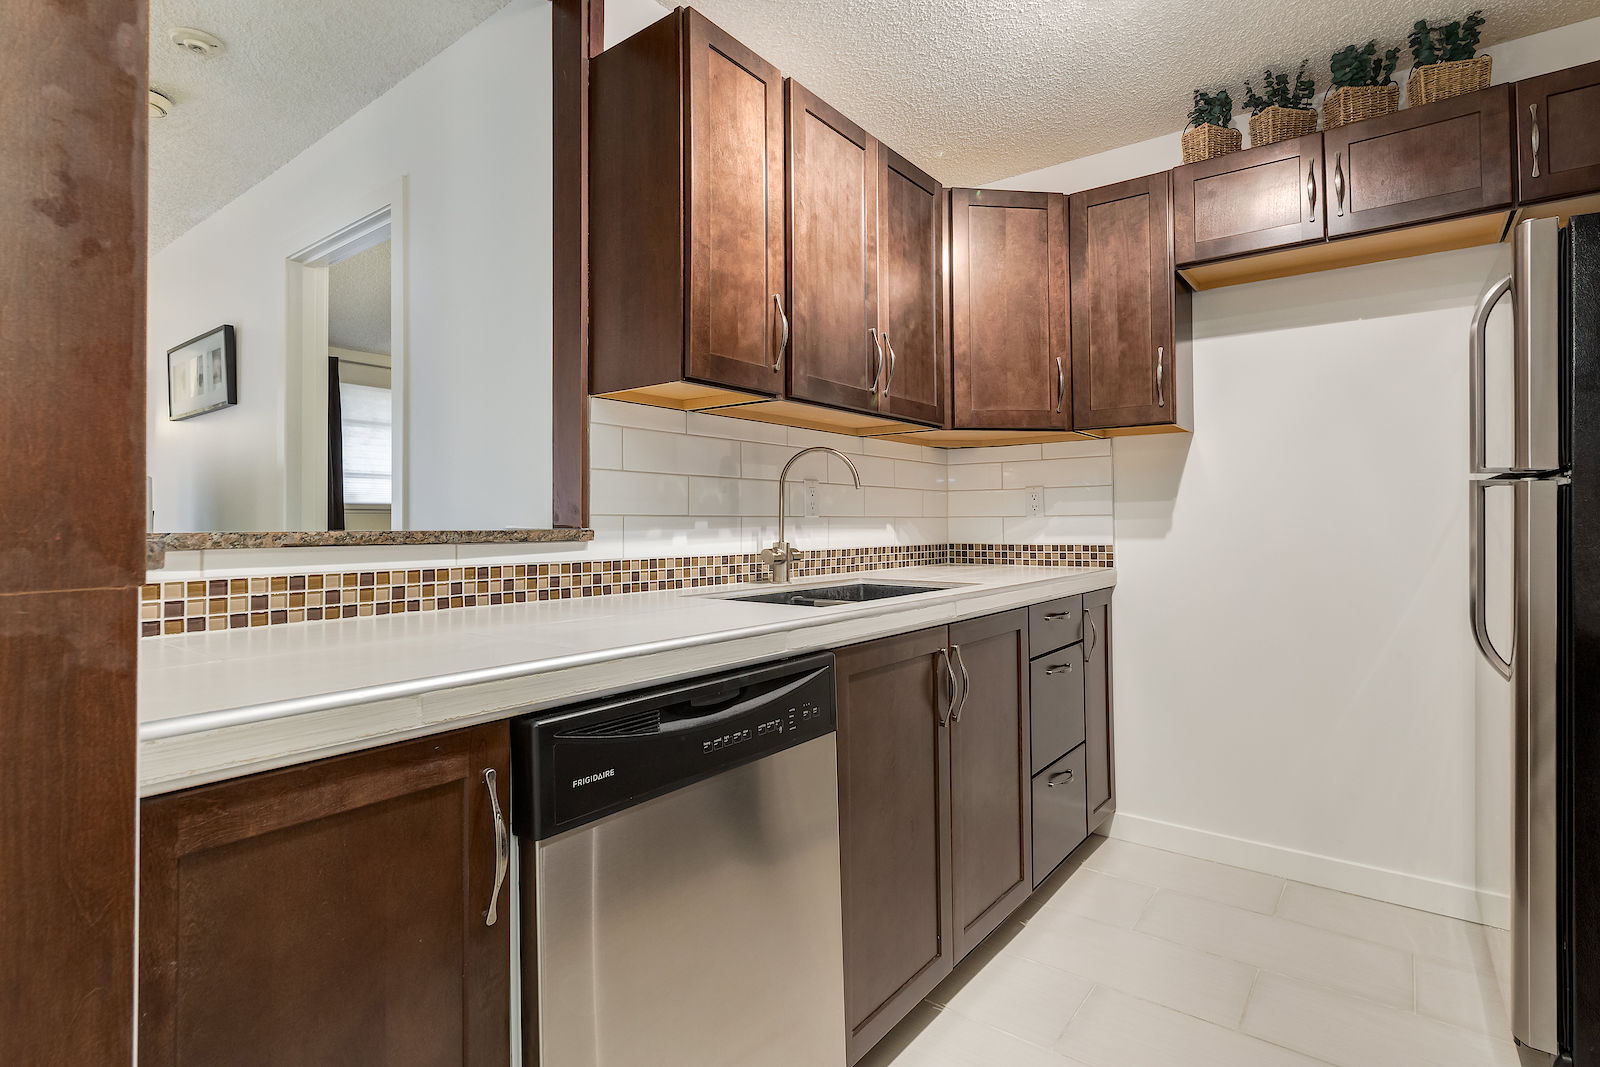 Uncategorized Kitchen Appliances Calgary calgary condo for rent sunalta inner city sw furnished 2bdr 4 piece stainless steel kitchen appliances